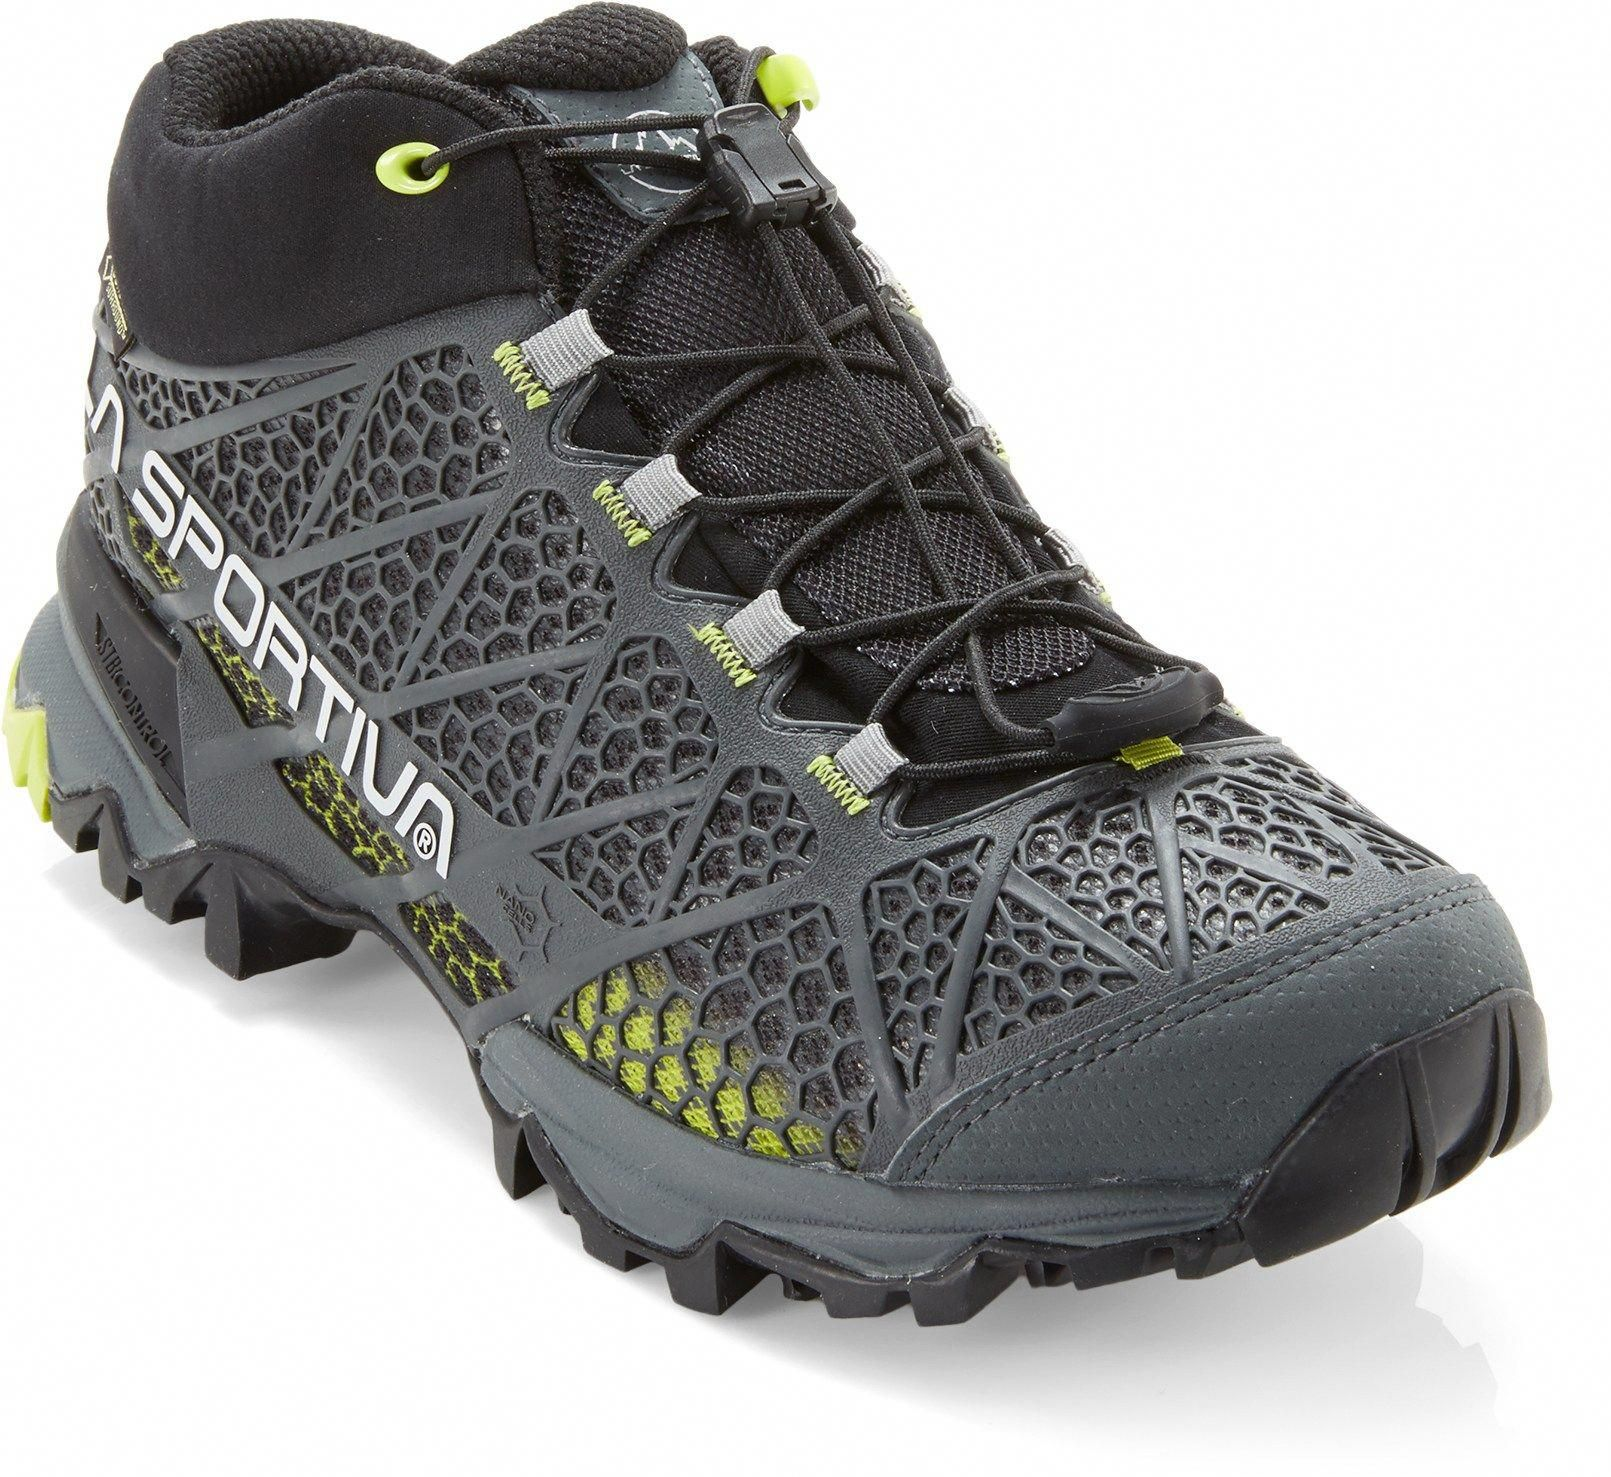 3e4ba032820 La Sportiva Synthesis Surround GTX Hiking Boots - Men's - REI ...